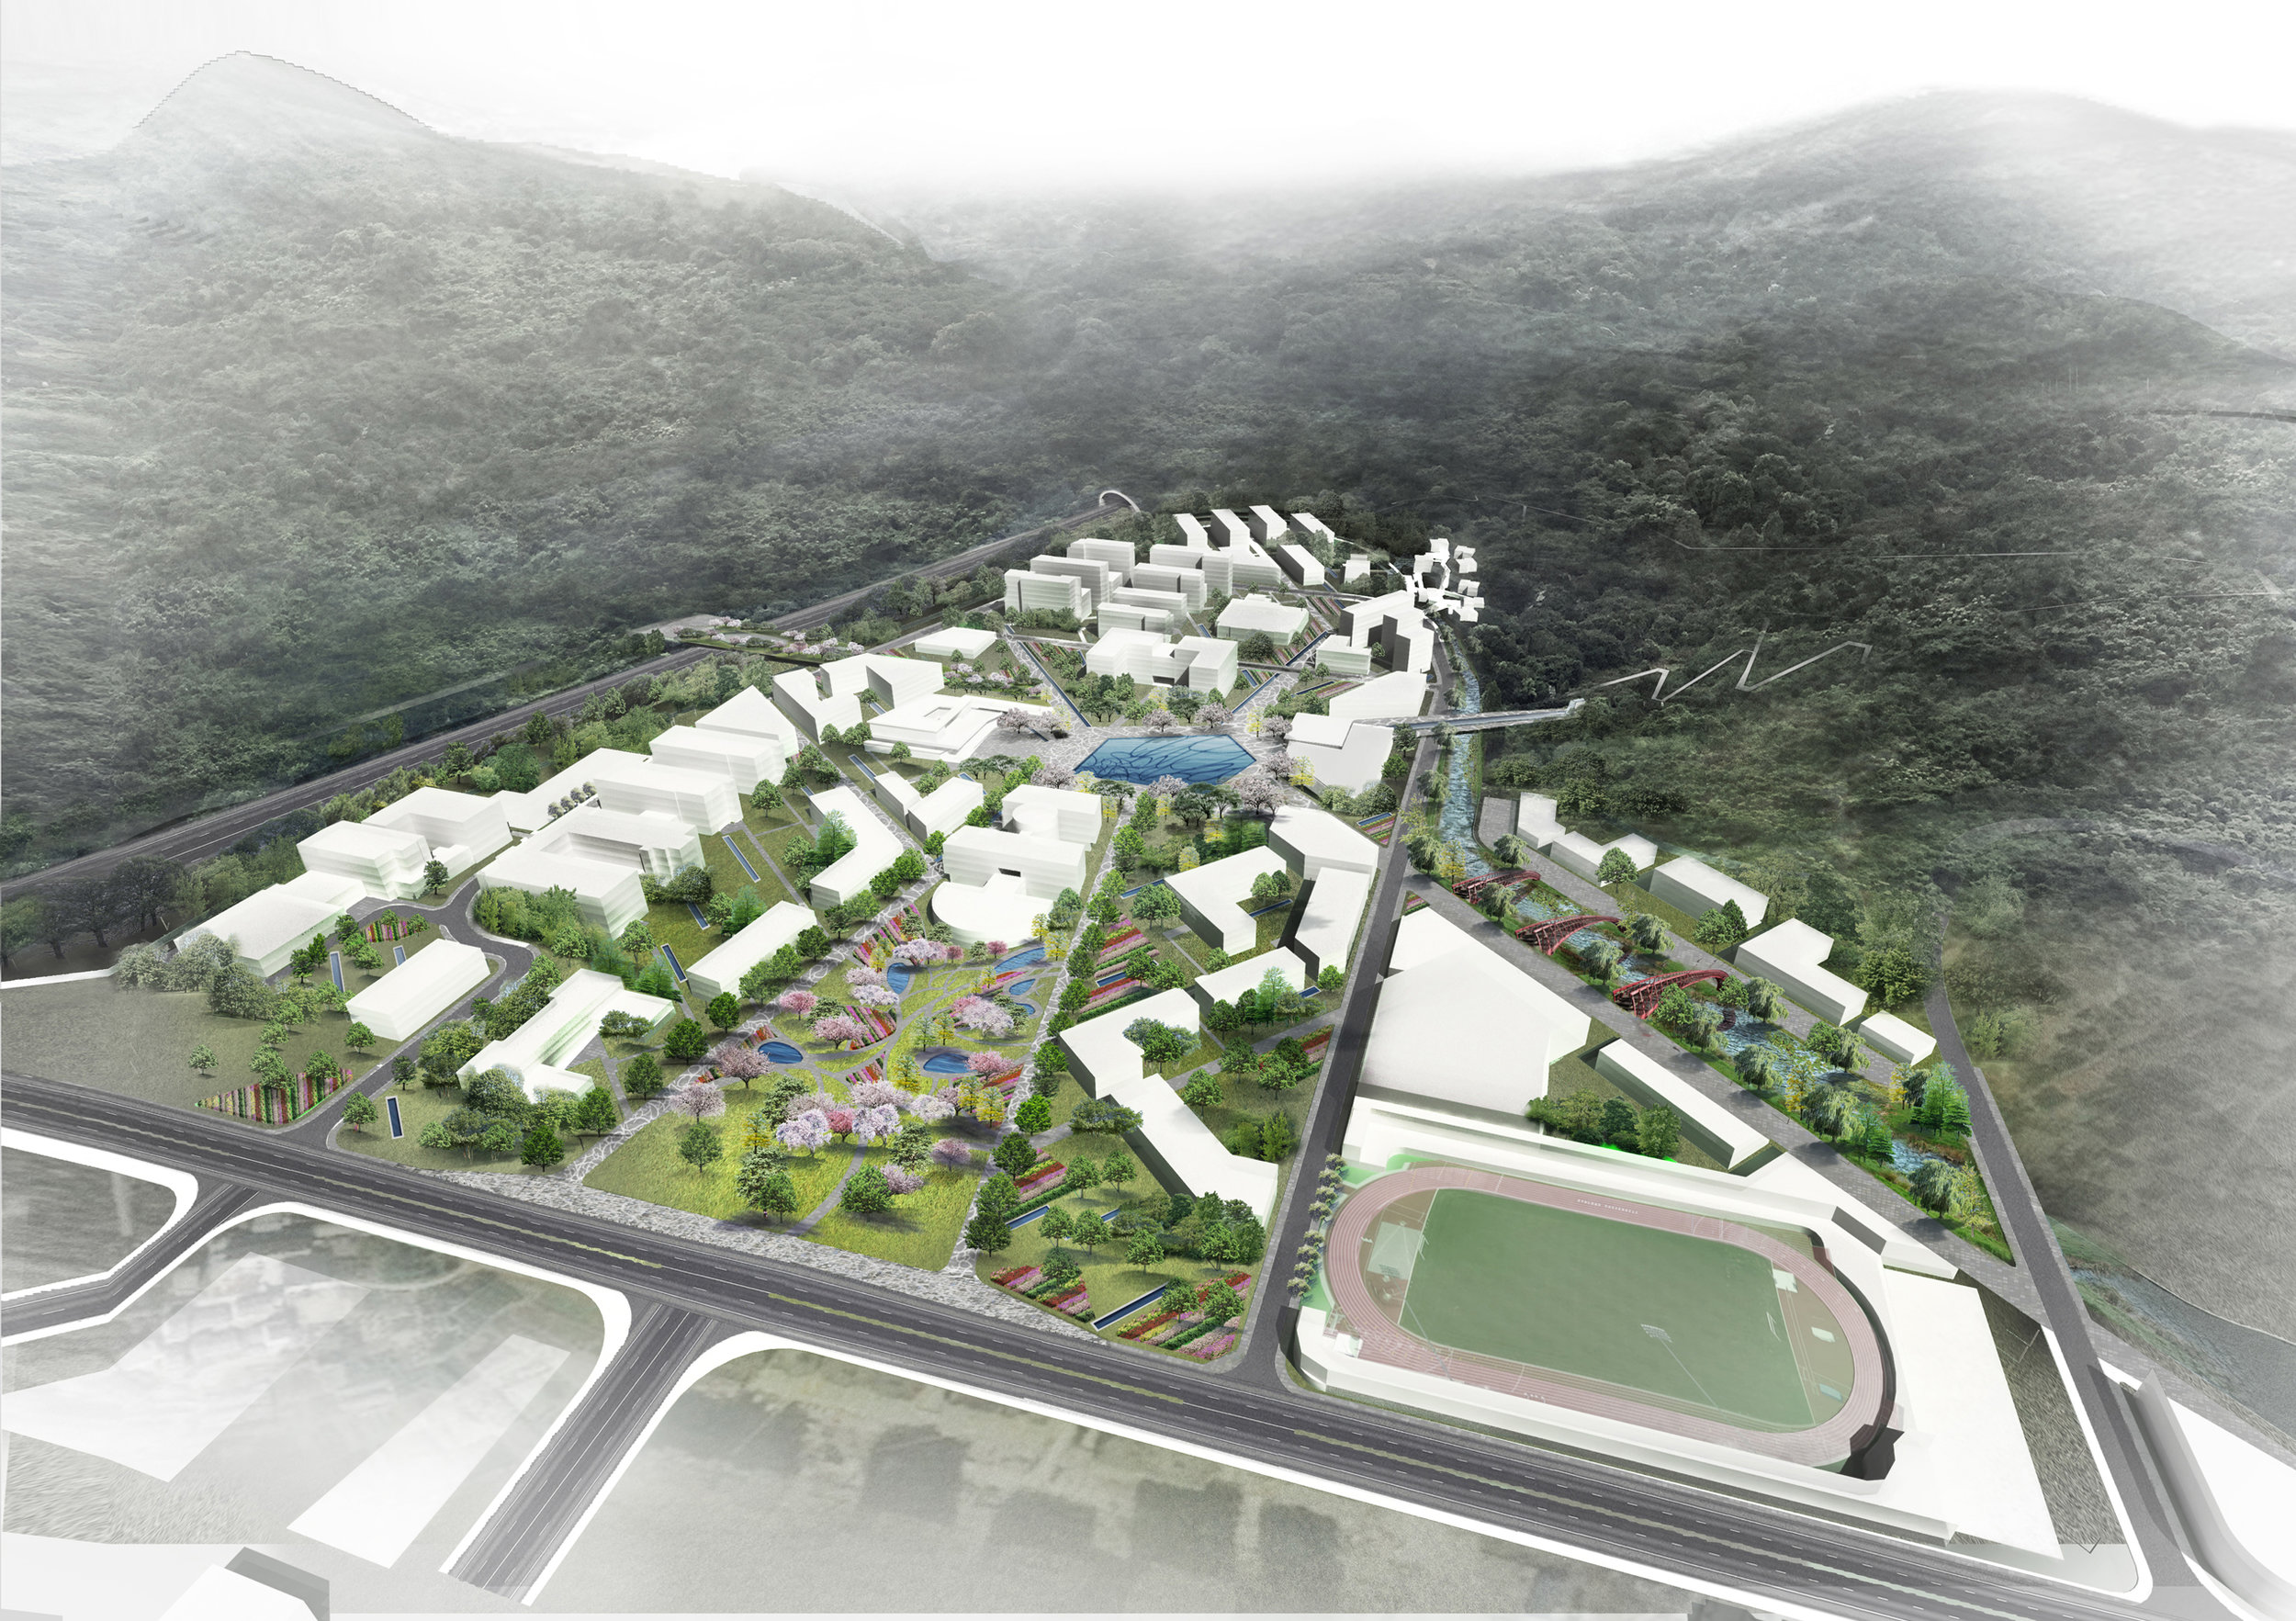 The future campus sitting in its natural ravine between two mountains